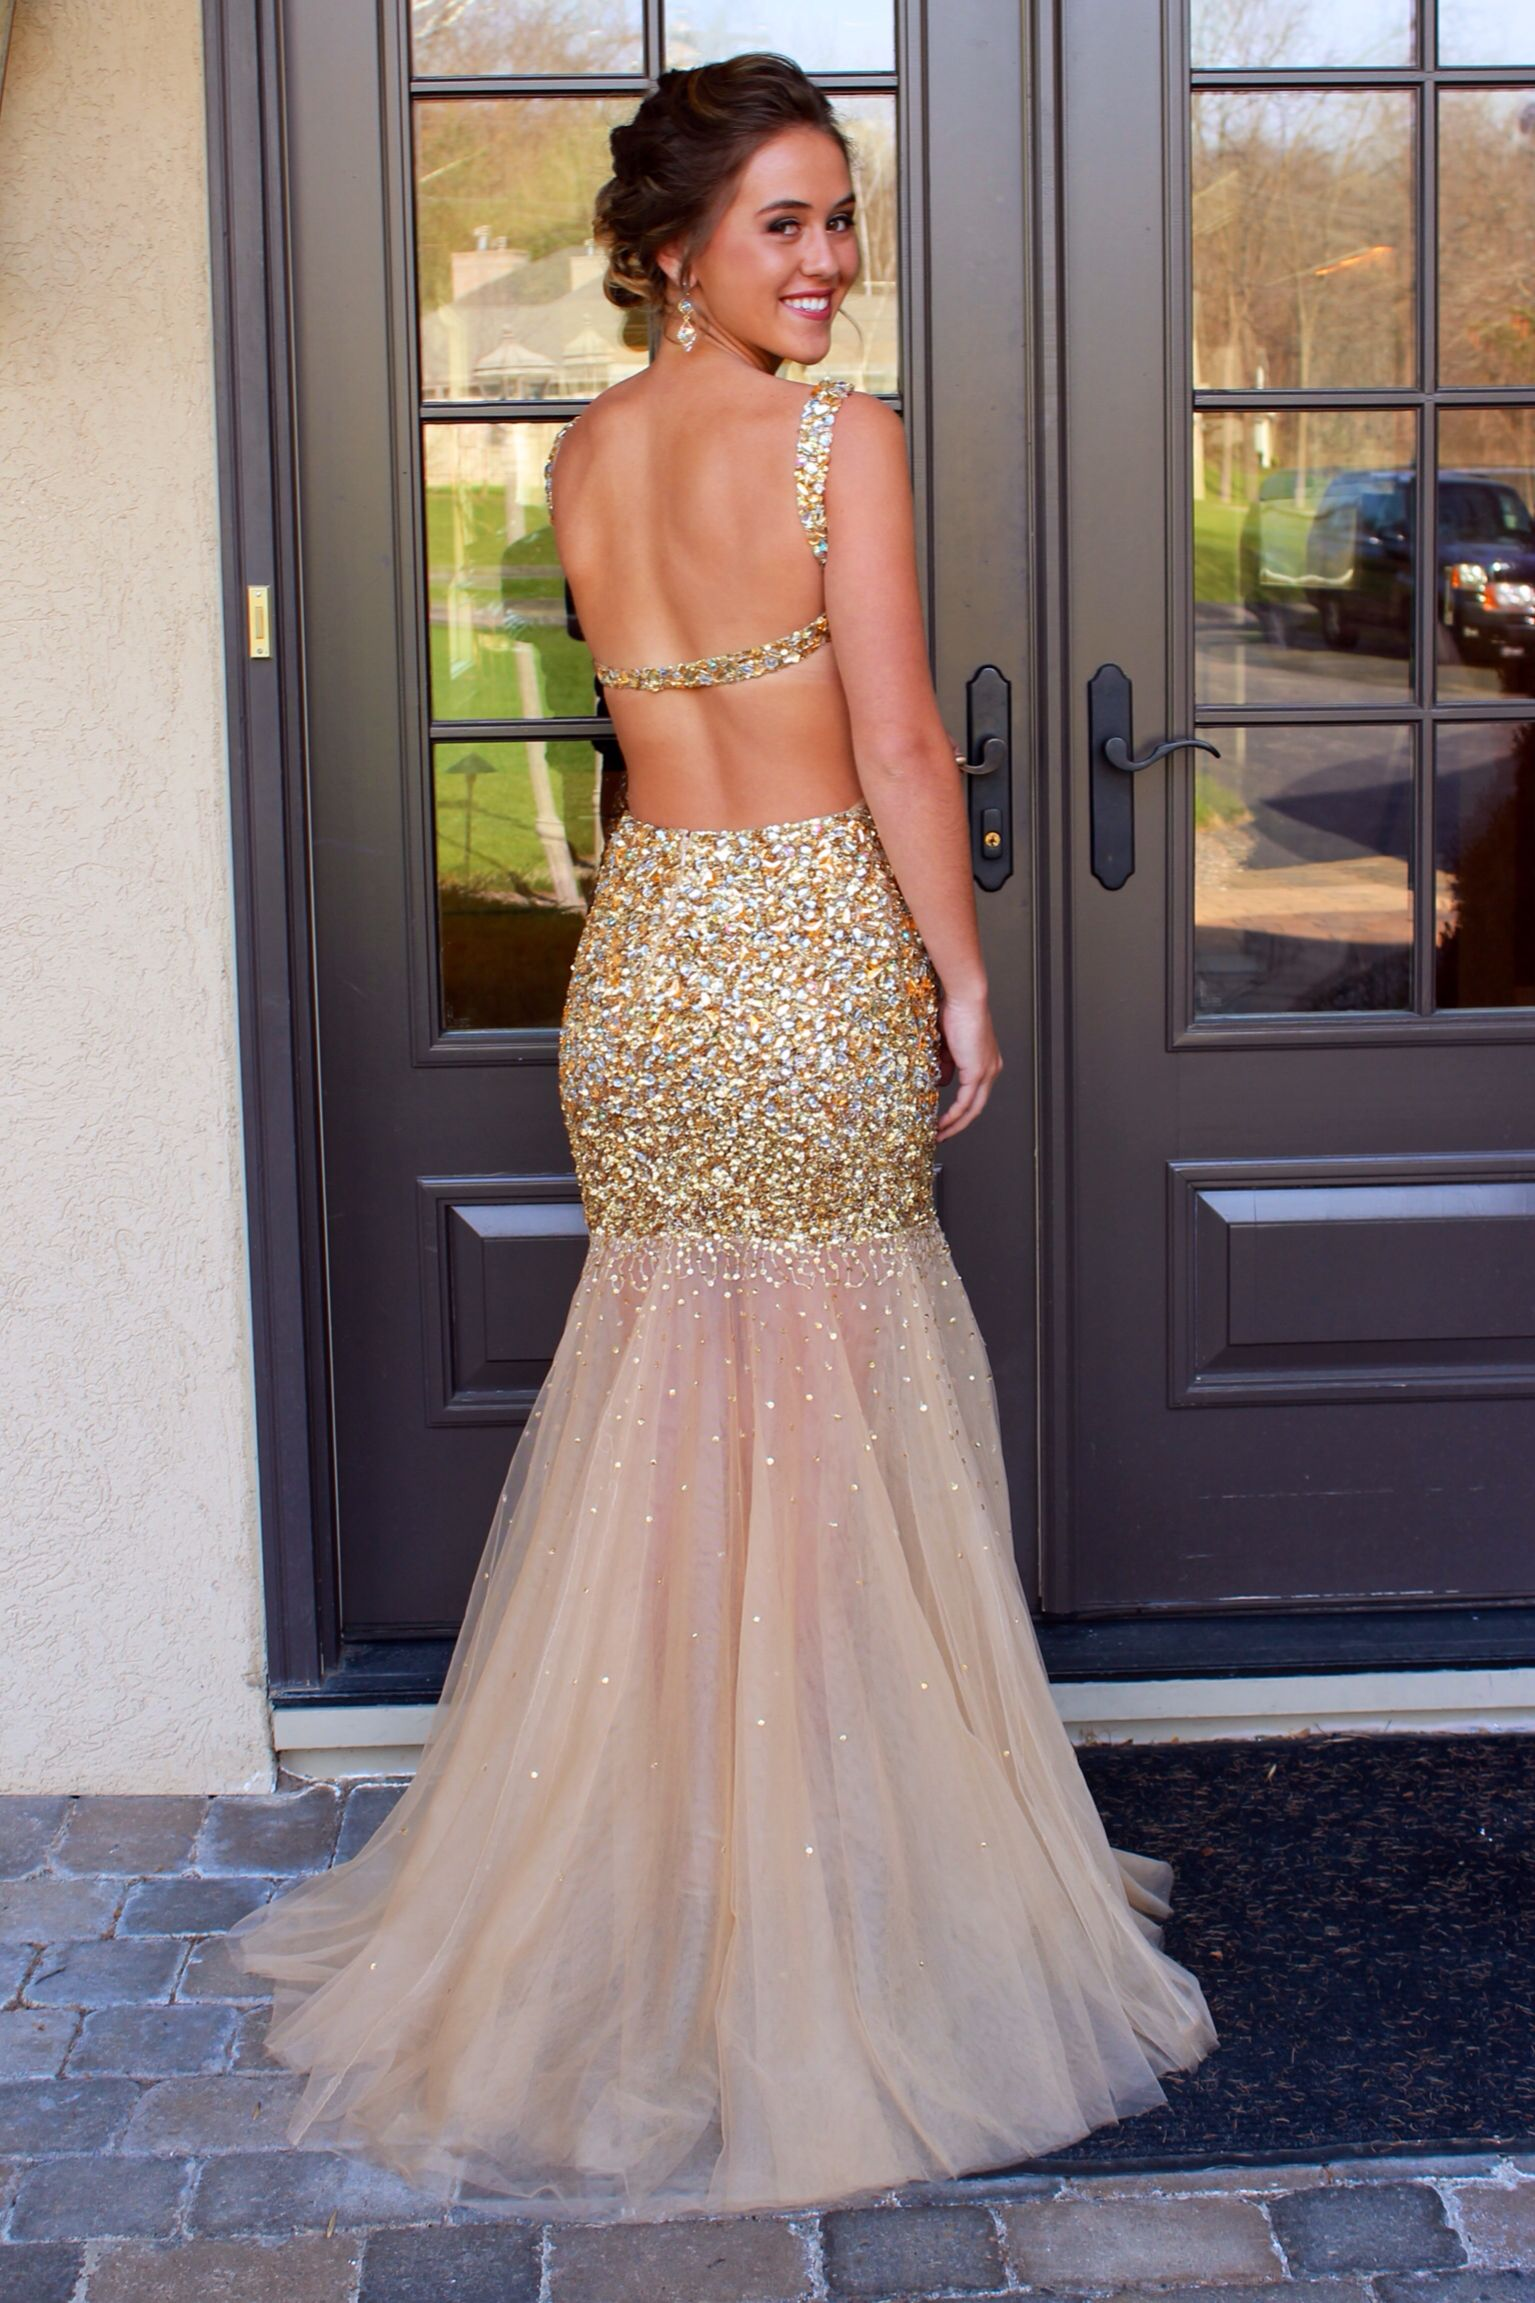 Funny Hot prom pictures tumblr